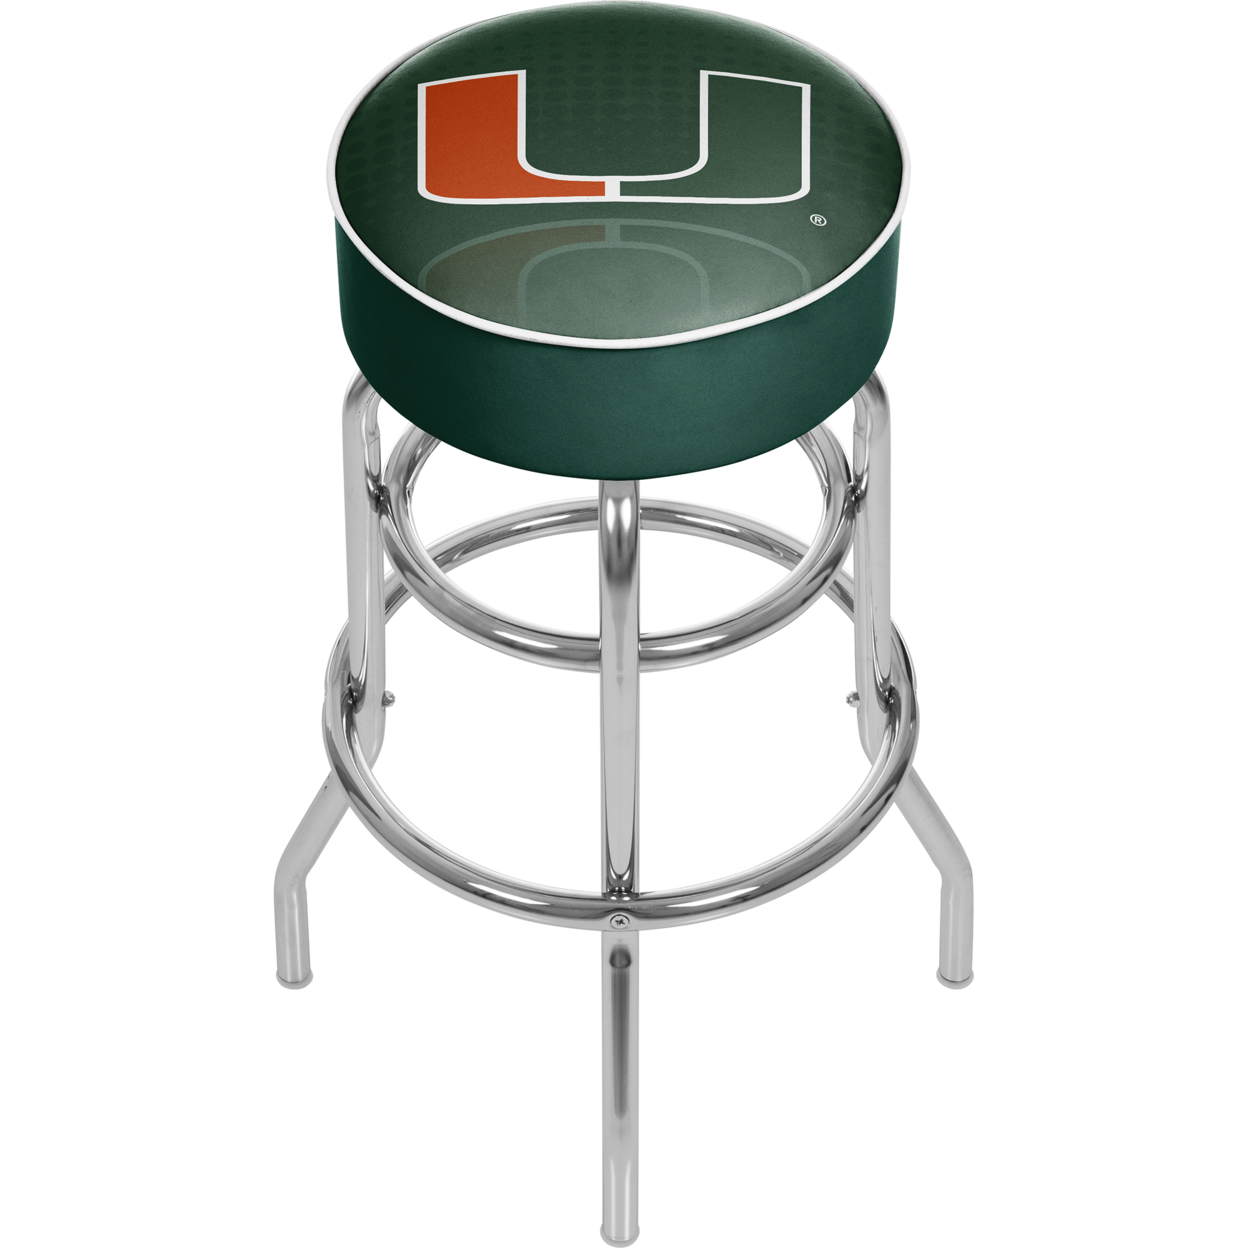 University of Miami Chrome Bar Stool with Swivel - Reflection